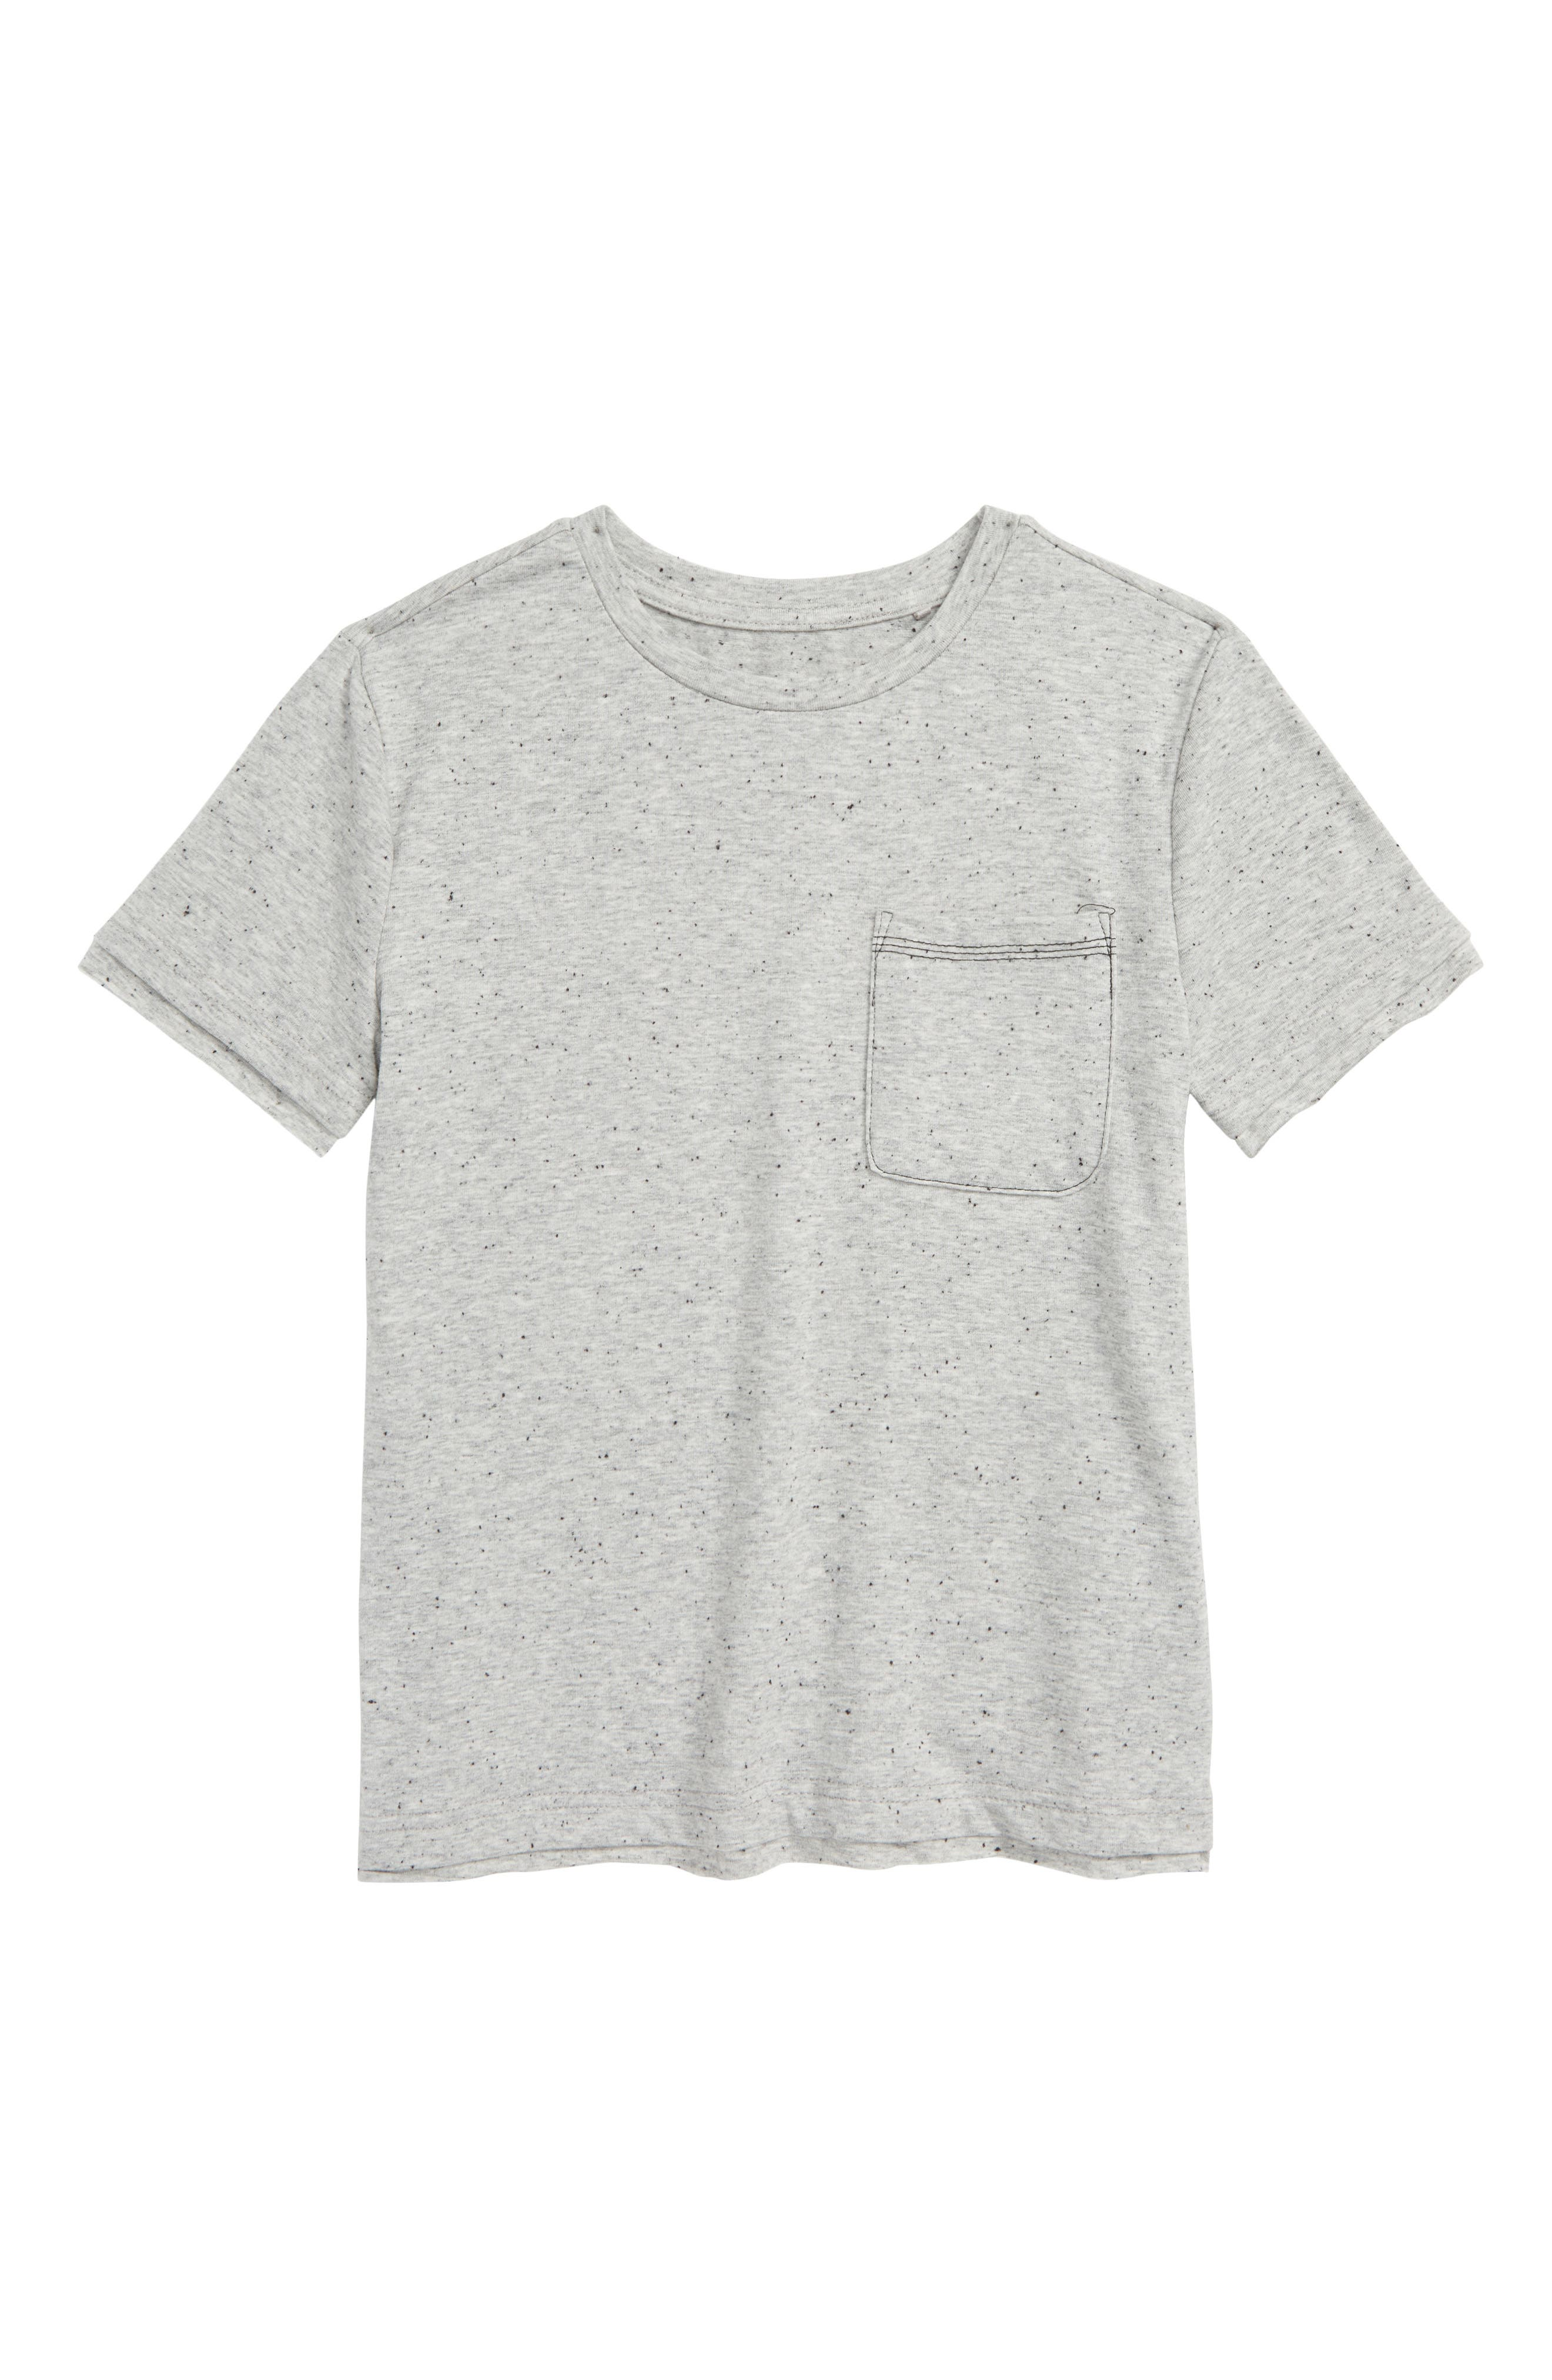 Pocket T-Shirt,                             Main thumbnail 1, color,                             021